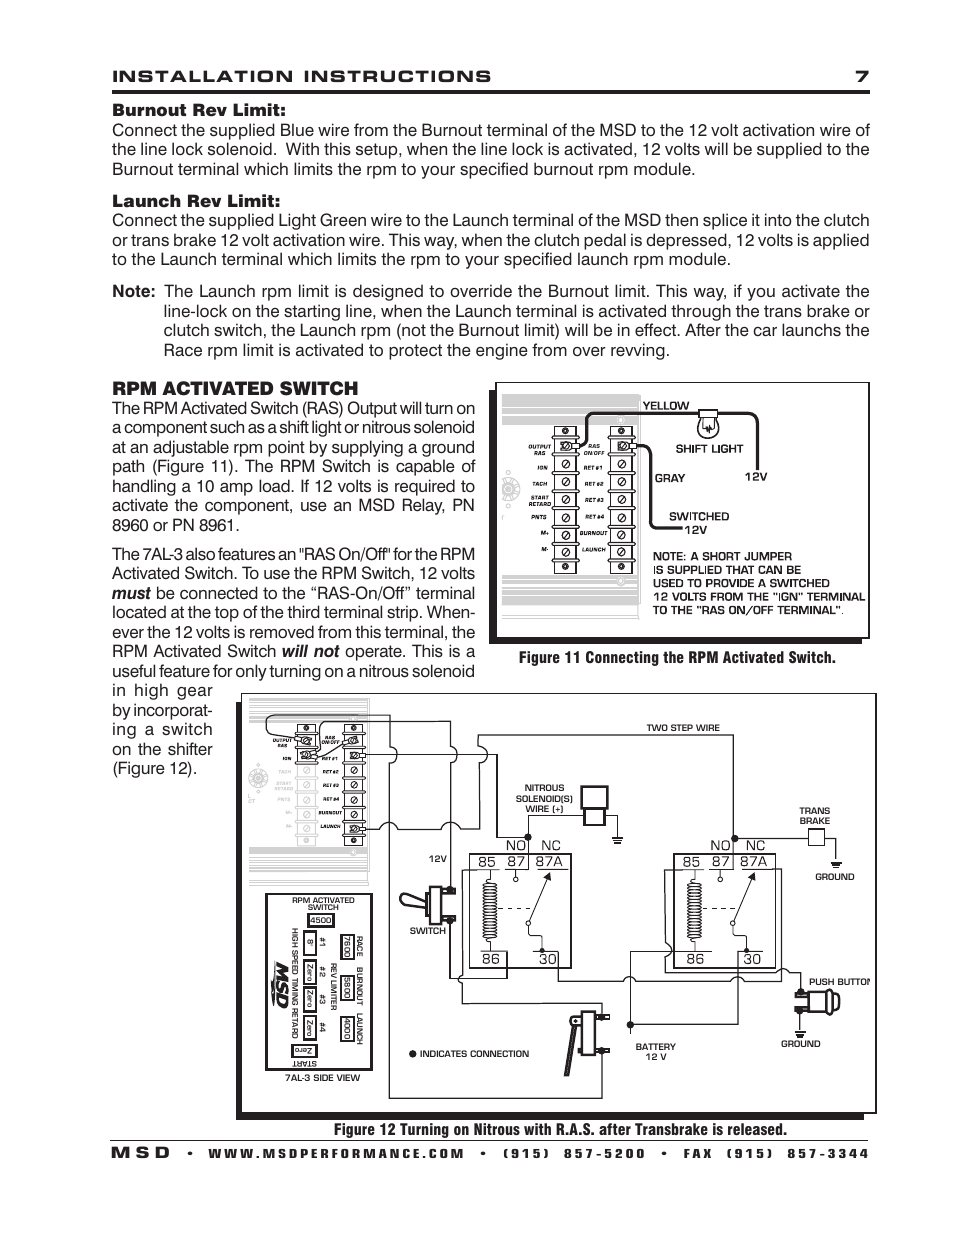 msd 7330 7al 3 ignition control installation page7?resize\\\=665%2C861 msd 8350 wiring diagram msd box wiring diagram \u2022 wiring diagrams msd 7al 2 wiring diagram at bayanpartner.co